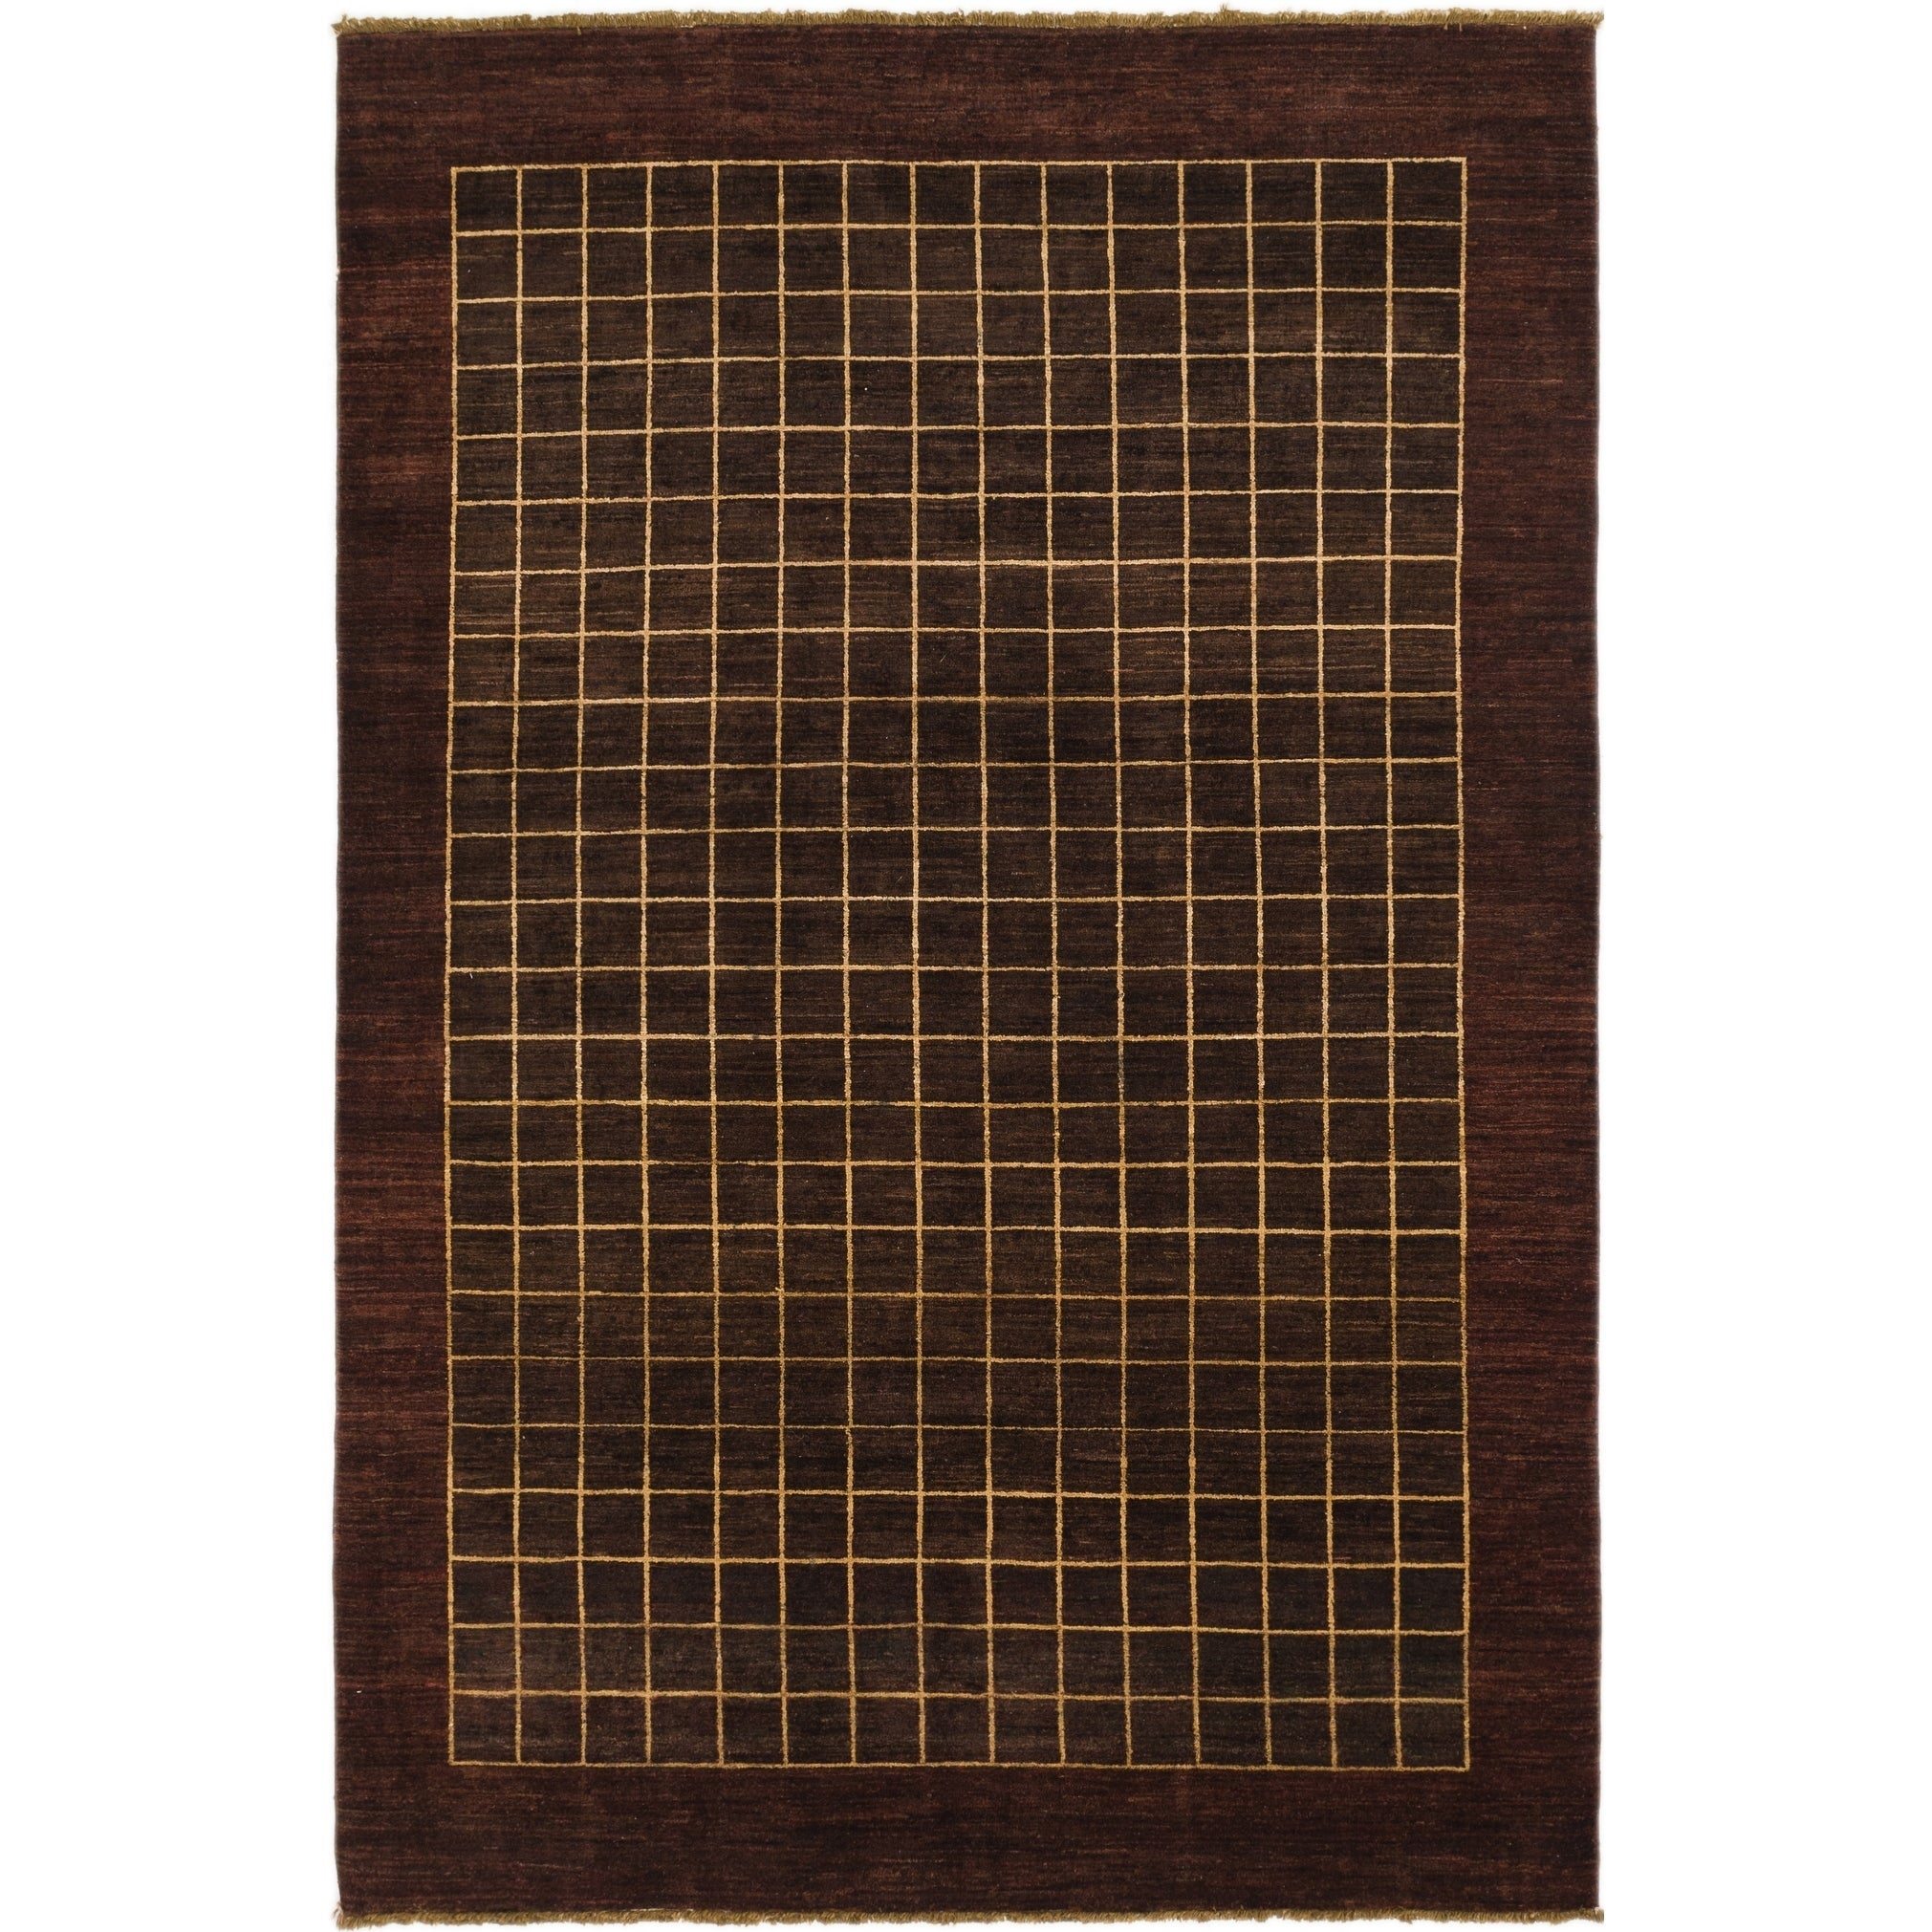 Hand Knotted Kashkuli Gabbeh Wool Area Rug - 6 x 9 (Plum Red - 6 x 9)